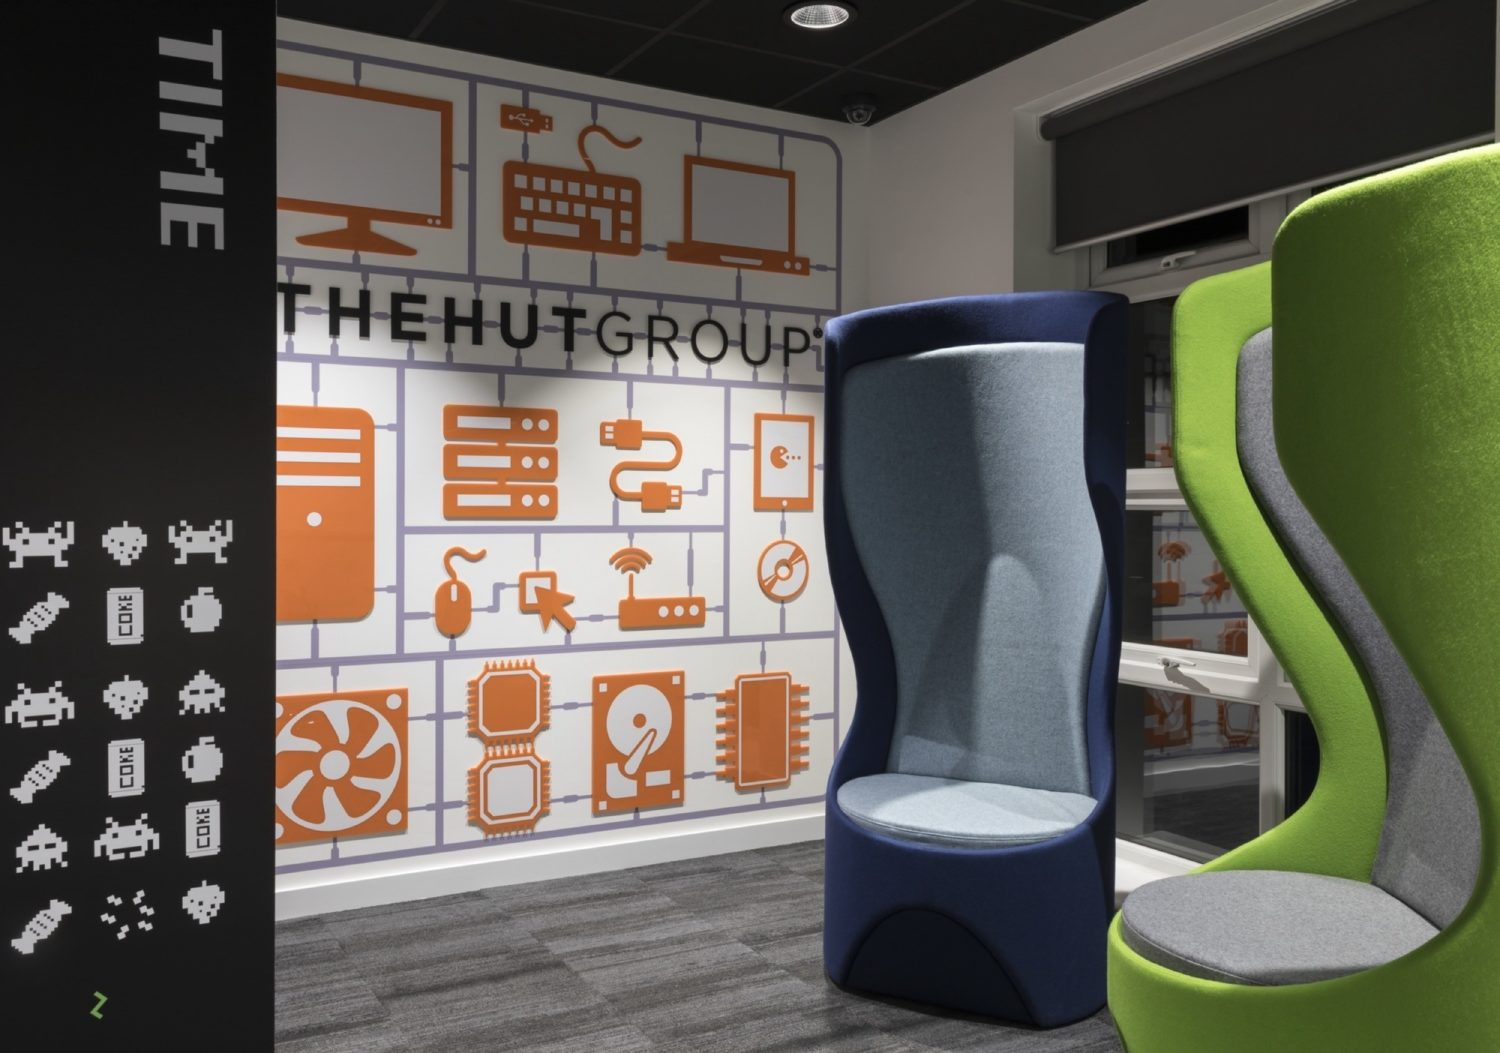 The Hut Group meeting pods with soft furnishings